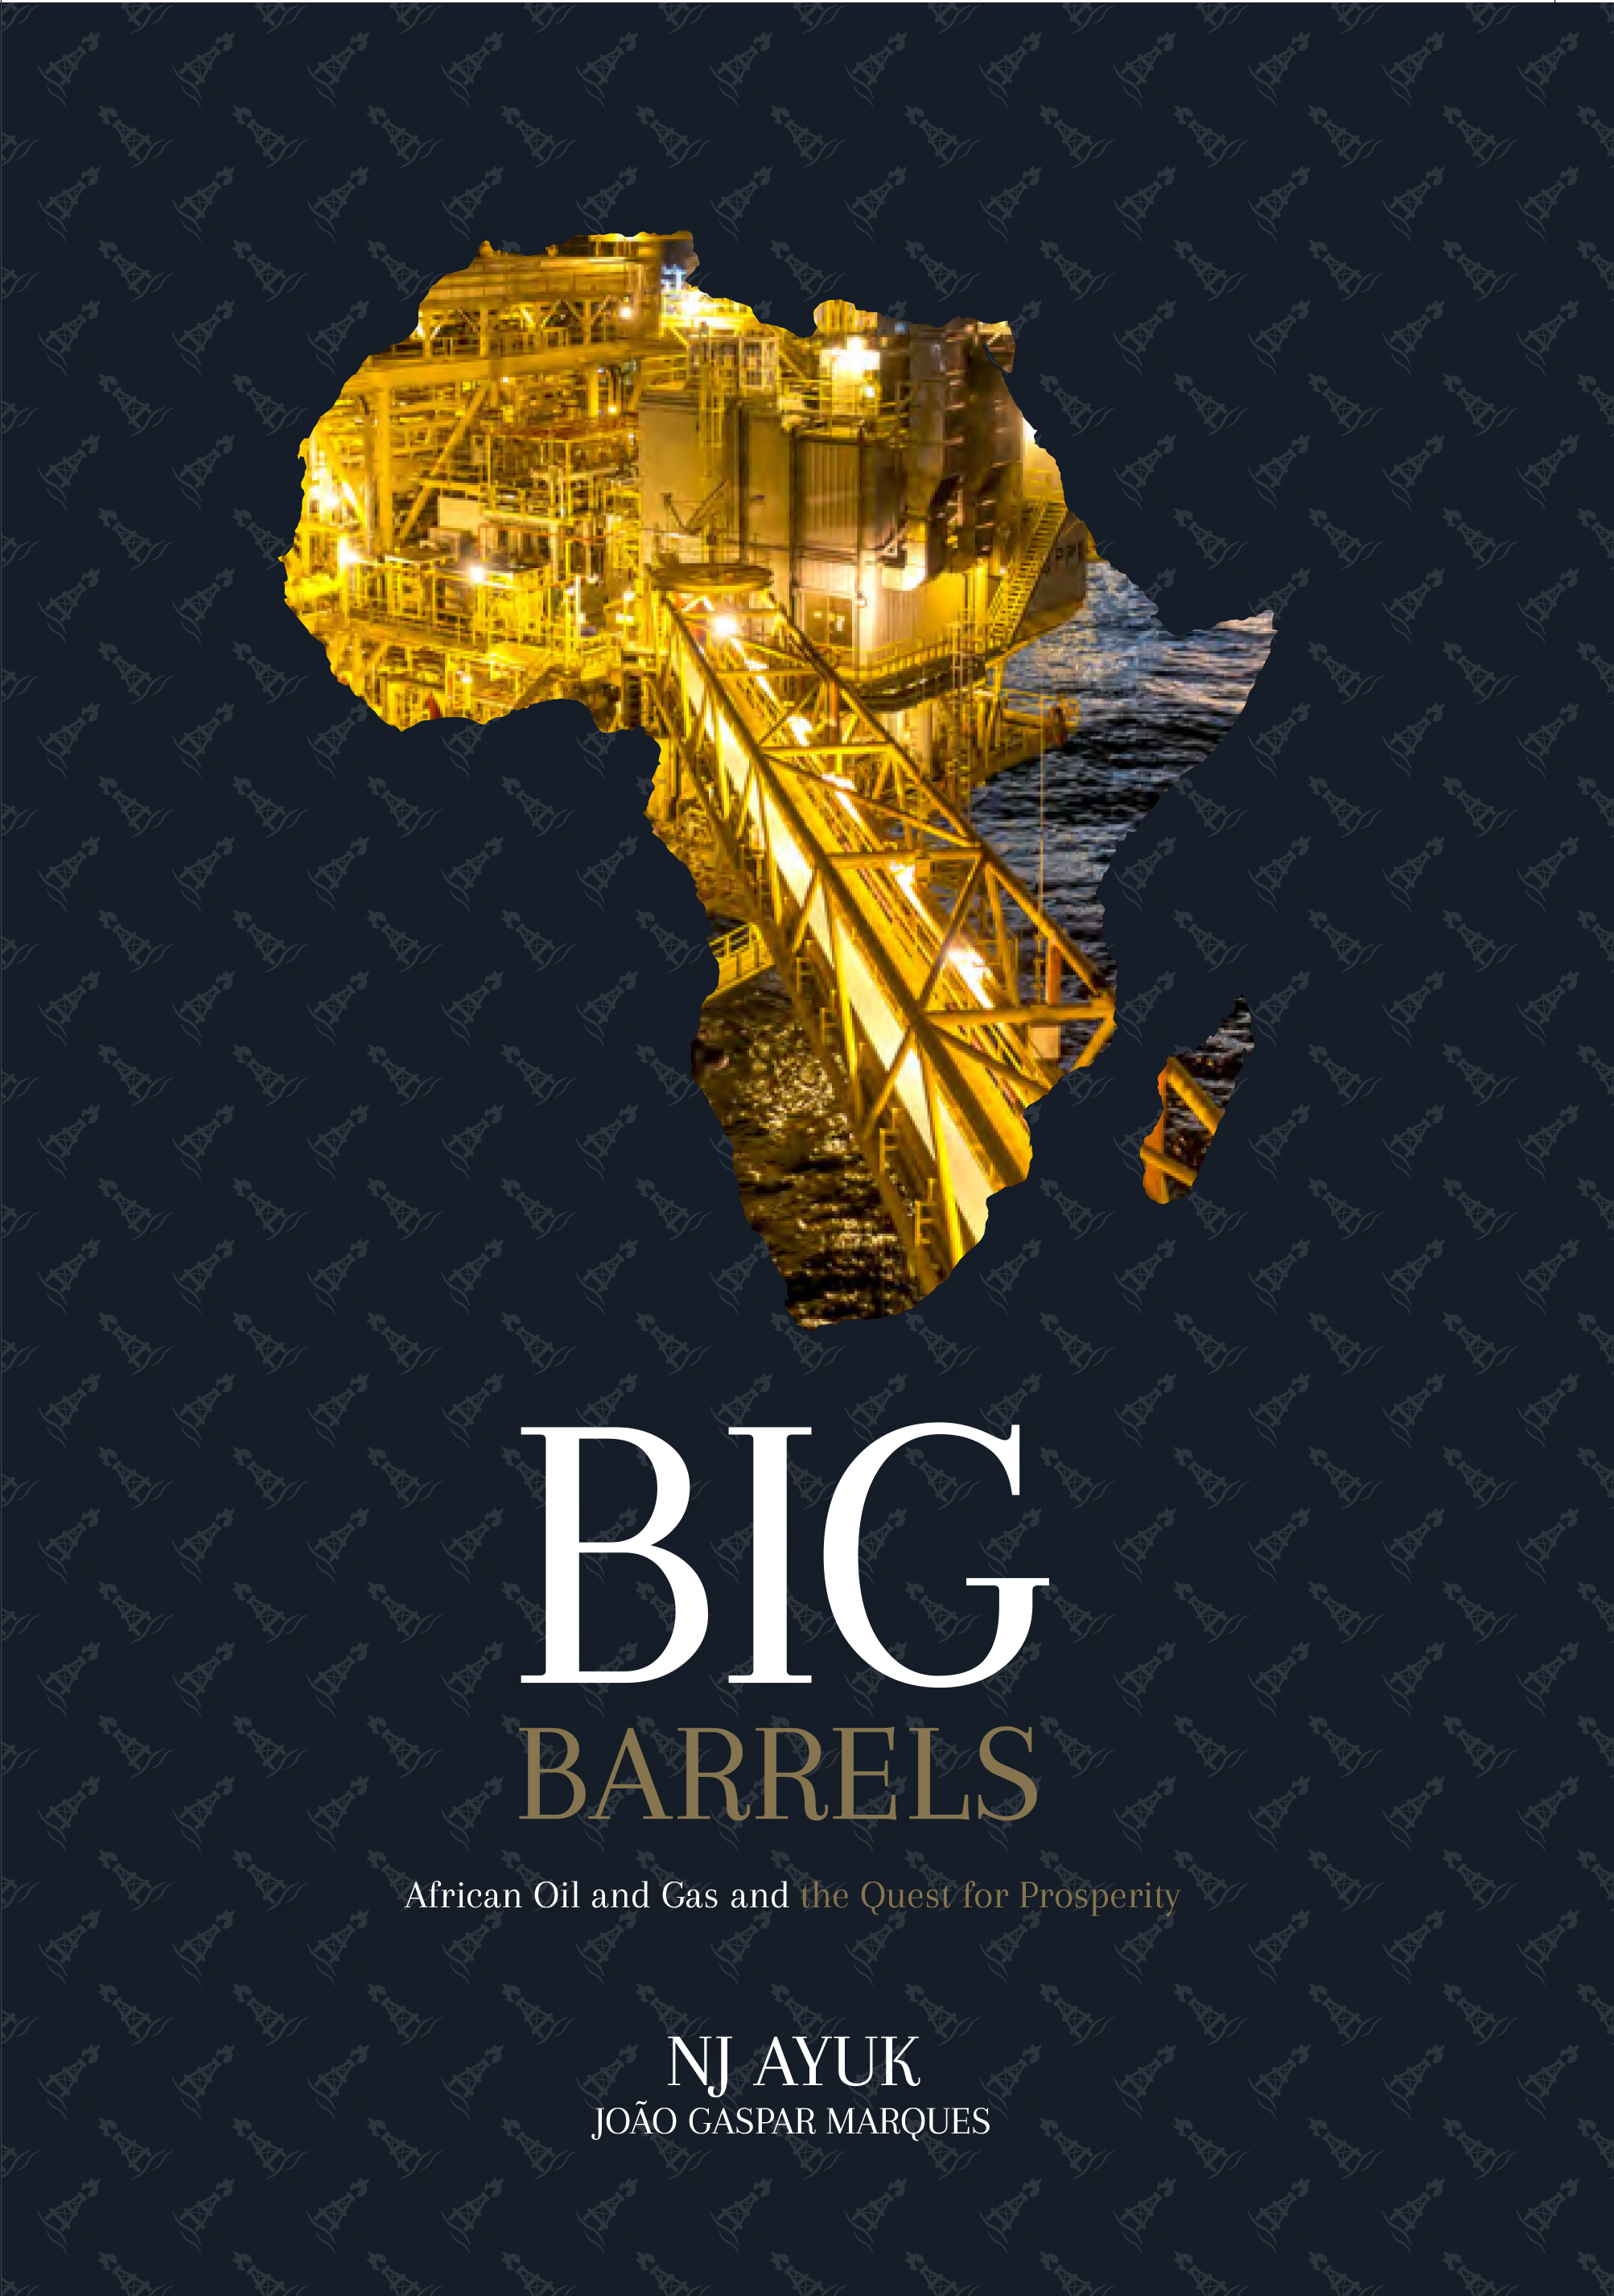 Big_barrels_cover_12.04.2017_eBook